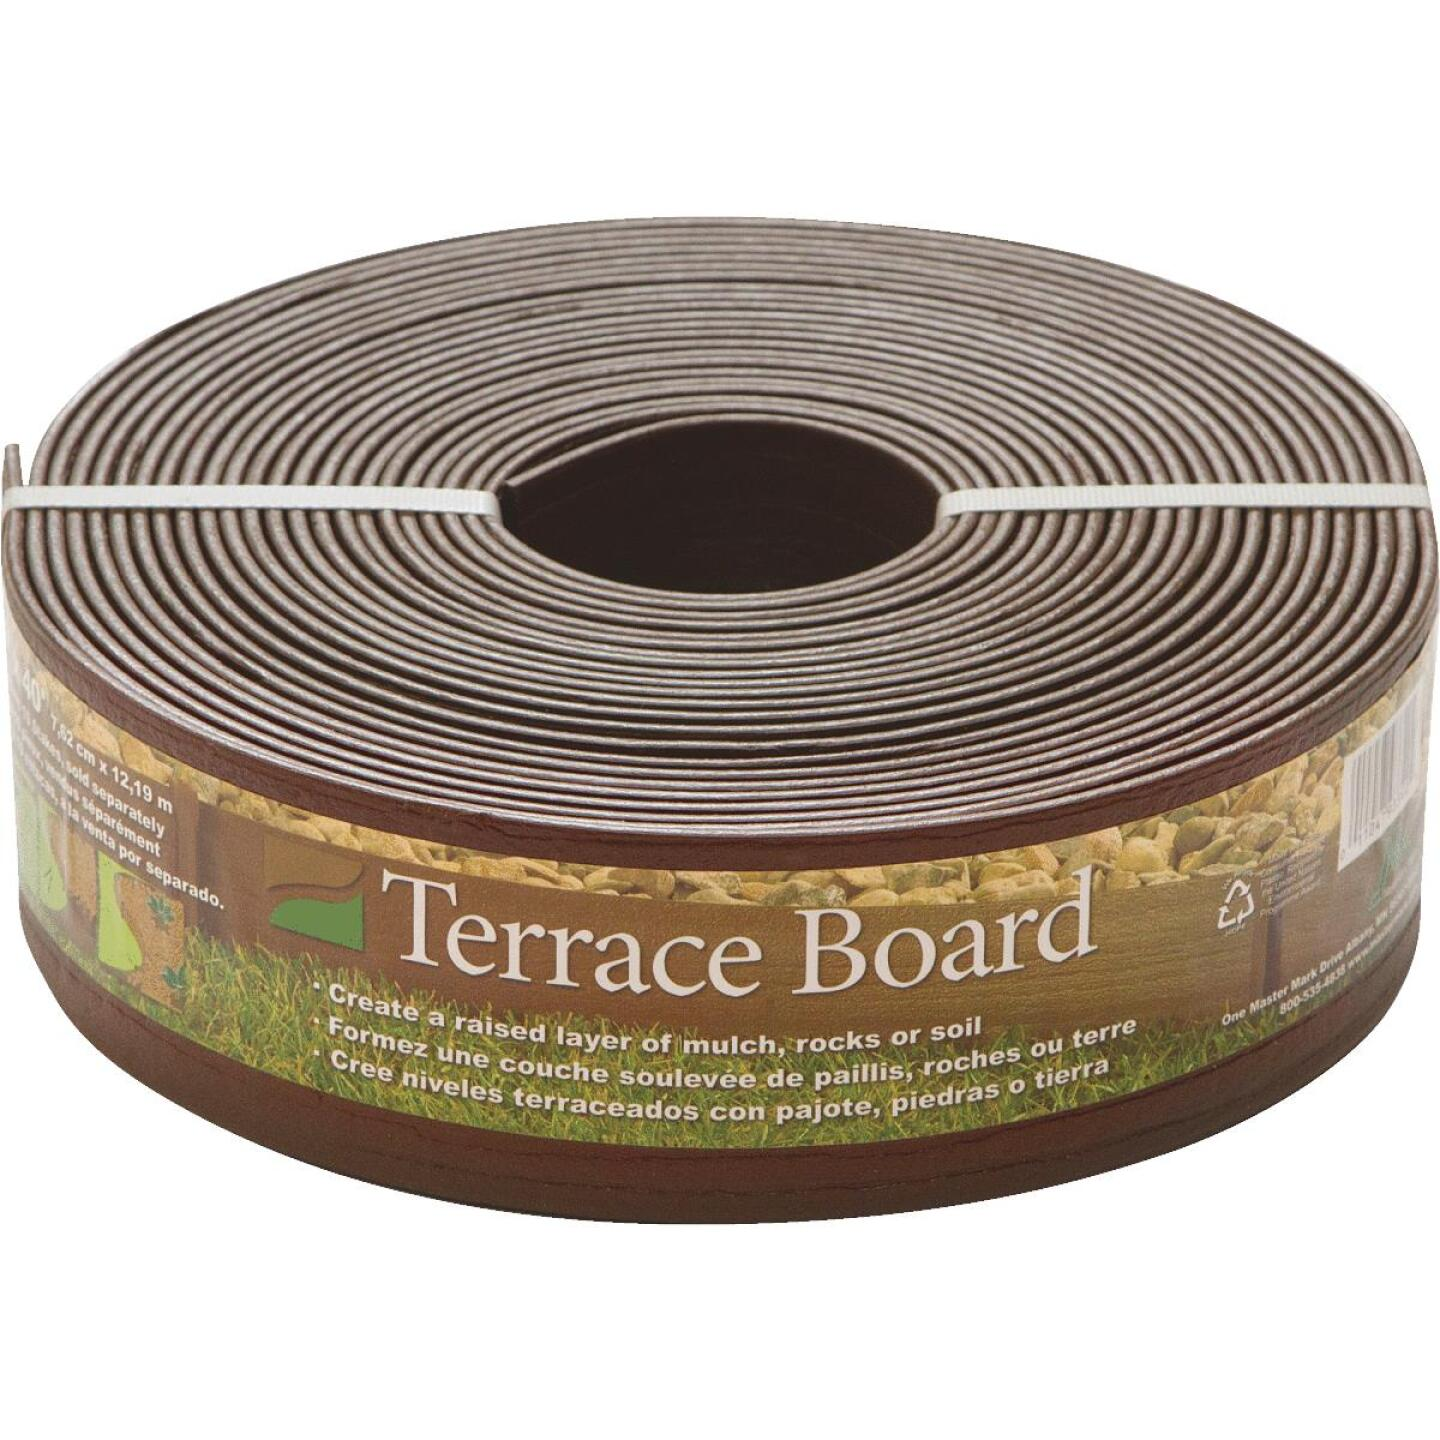 Master Mark 3 In. H. x 40 Ft. L. Brown Terrace Board Lawn Edging Image 1